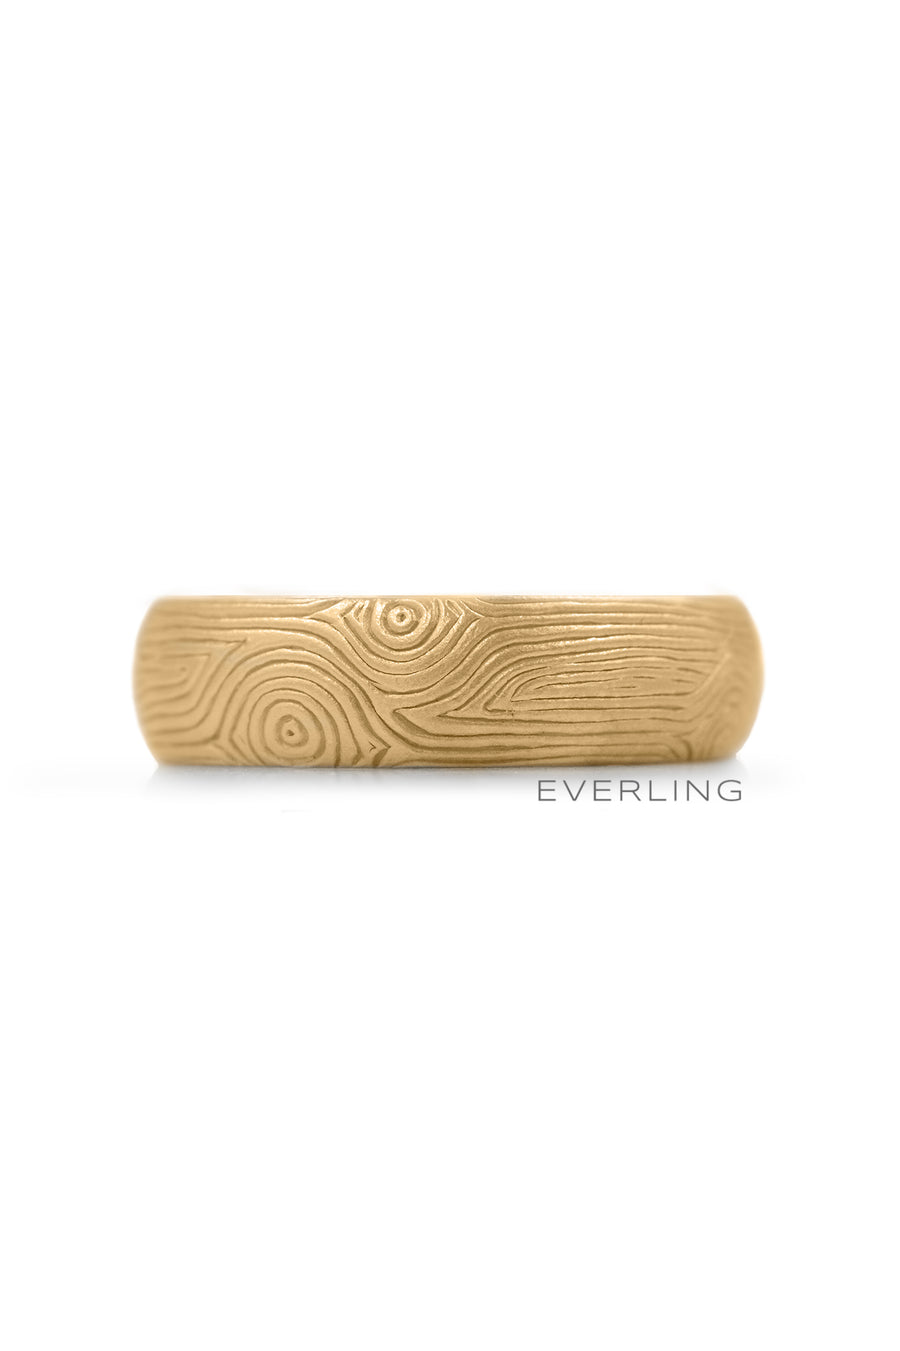 Up-cycled 14K Yellow Gold Band with a Hand EngravedWood Grain Pattern. #weddingrings #designerjewelry www.everlingjewelry.com